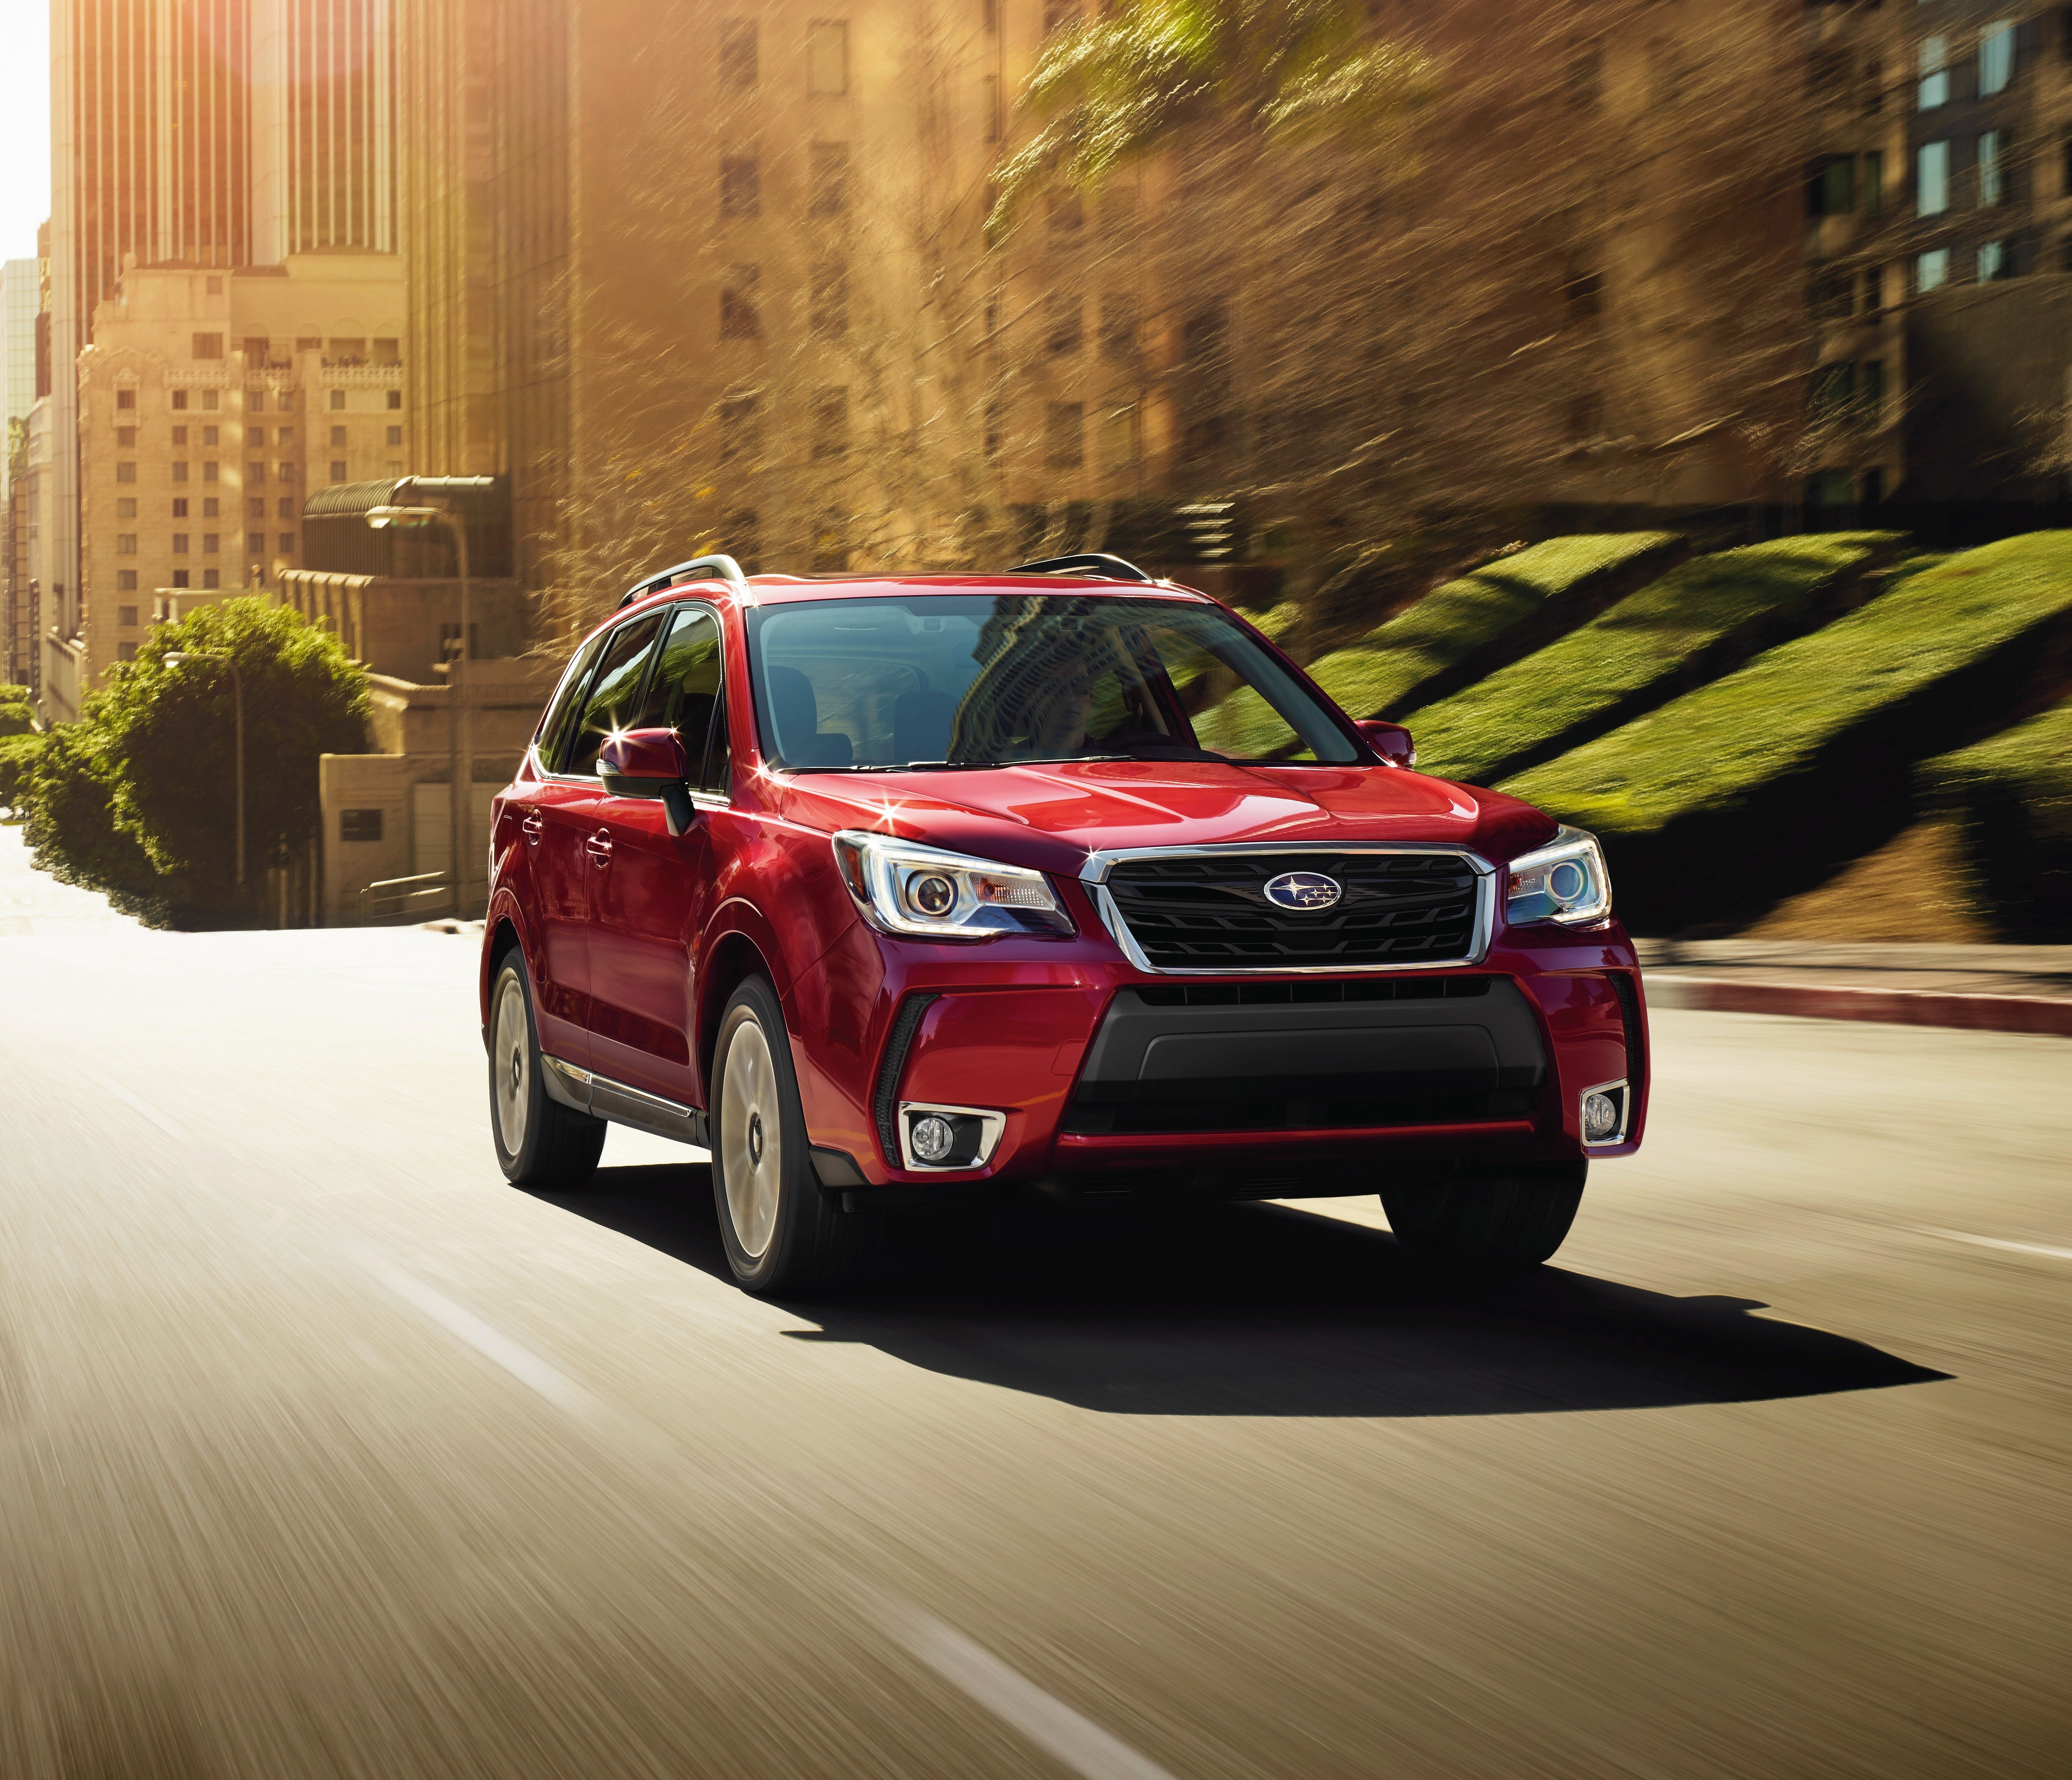 2018 Subaru Forester Review Carfax Vehicle Research